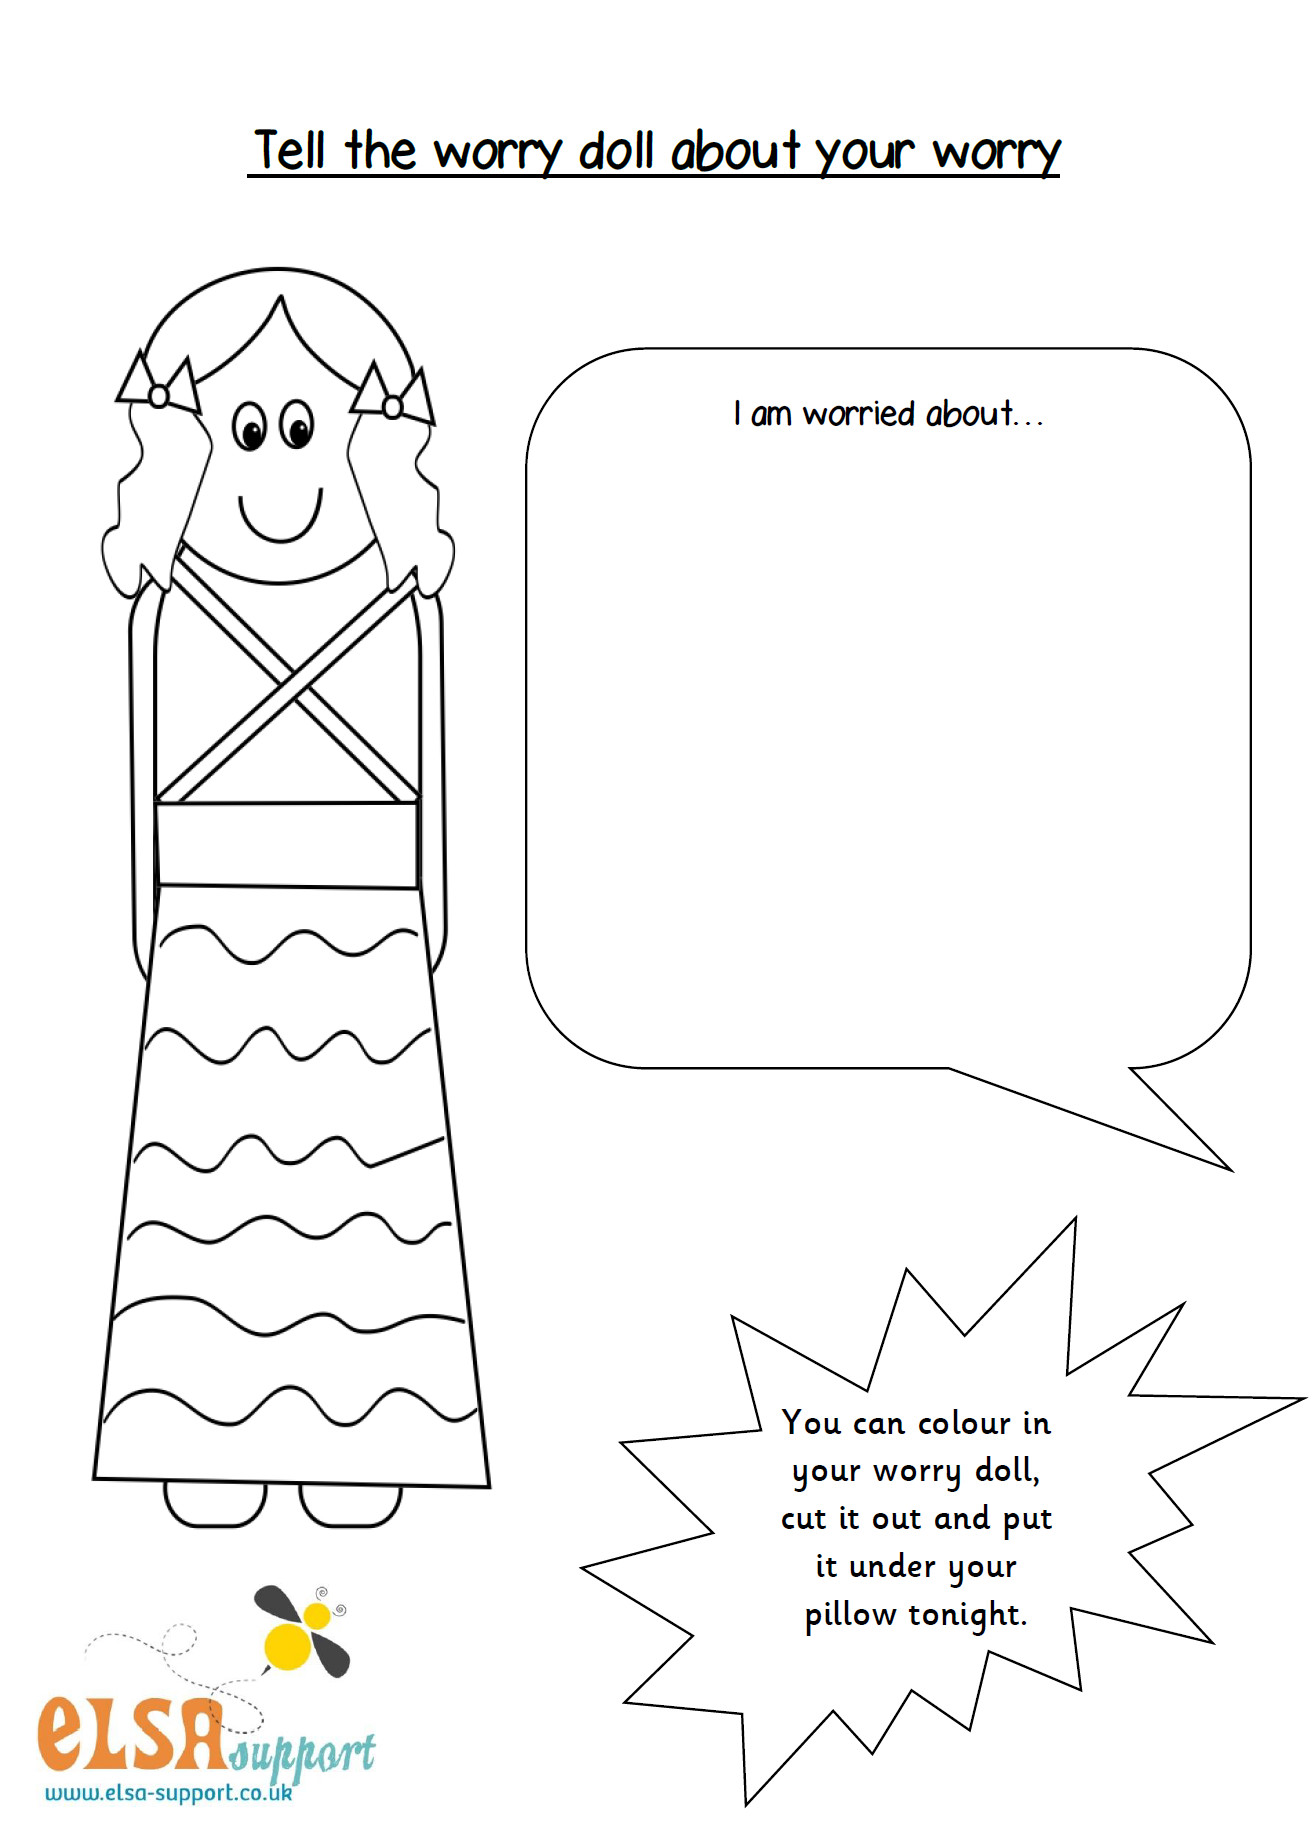 Coloring Sheets For Kids On Worrying  Worry Doll worksheet Elsa Support